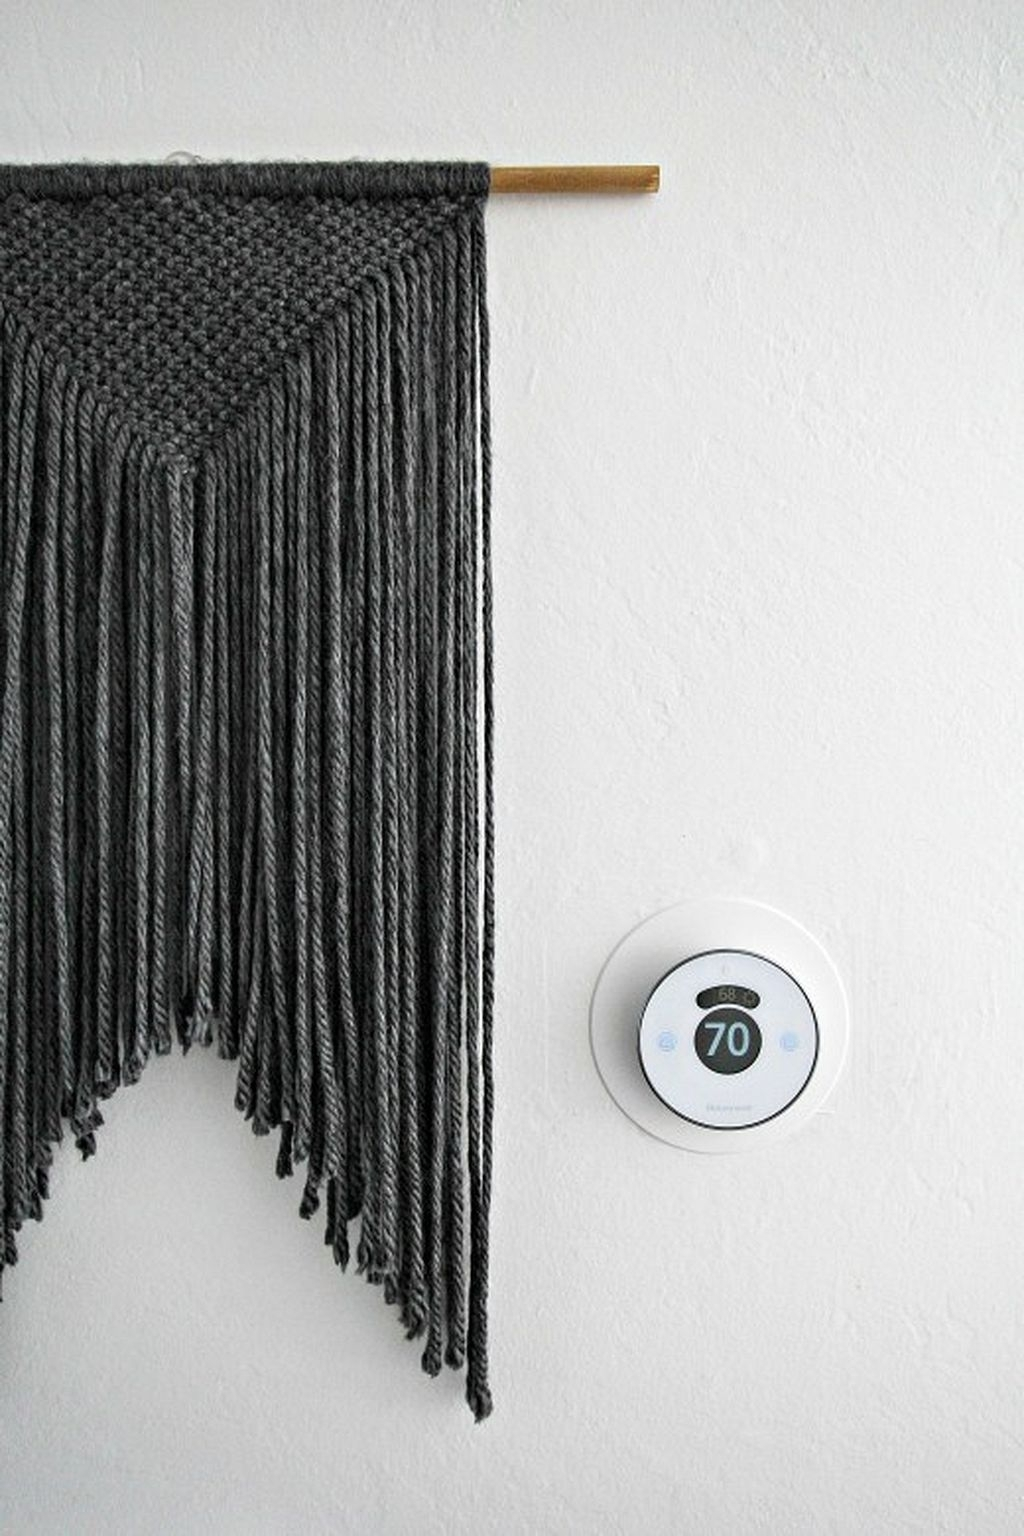 100+ Wall Hanging Decor Ideas | Wall Hanging Decor, Wall Hangings With 2017 Yarn Wall Art (View 1 of 20)